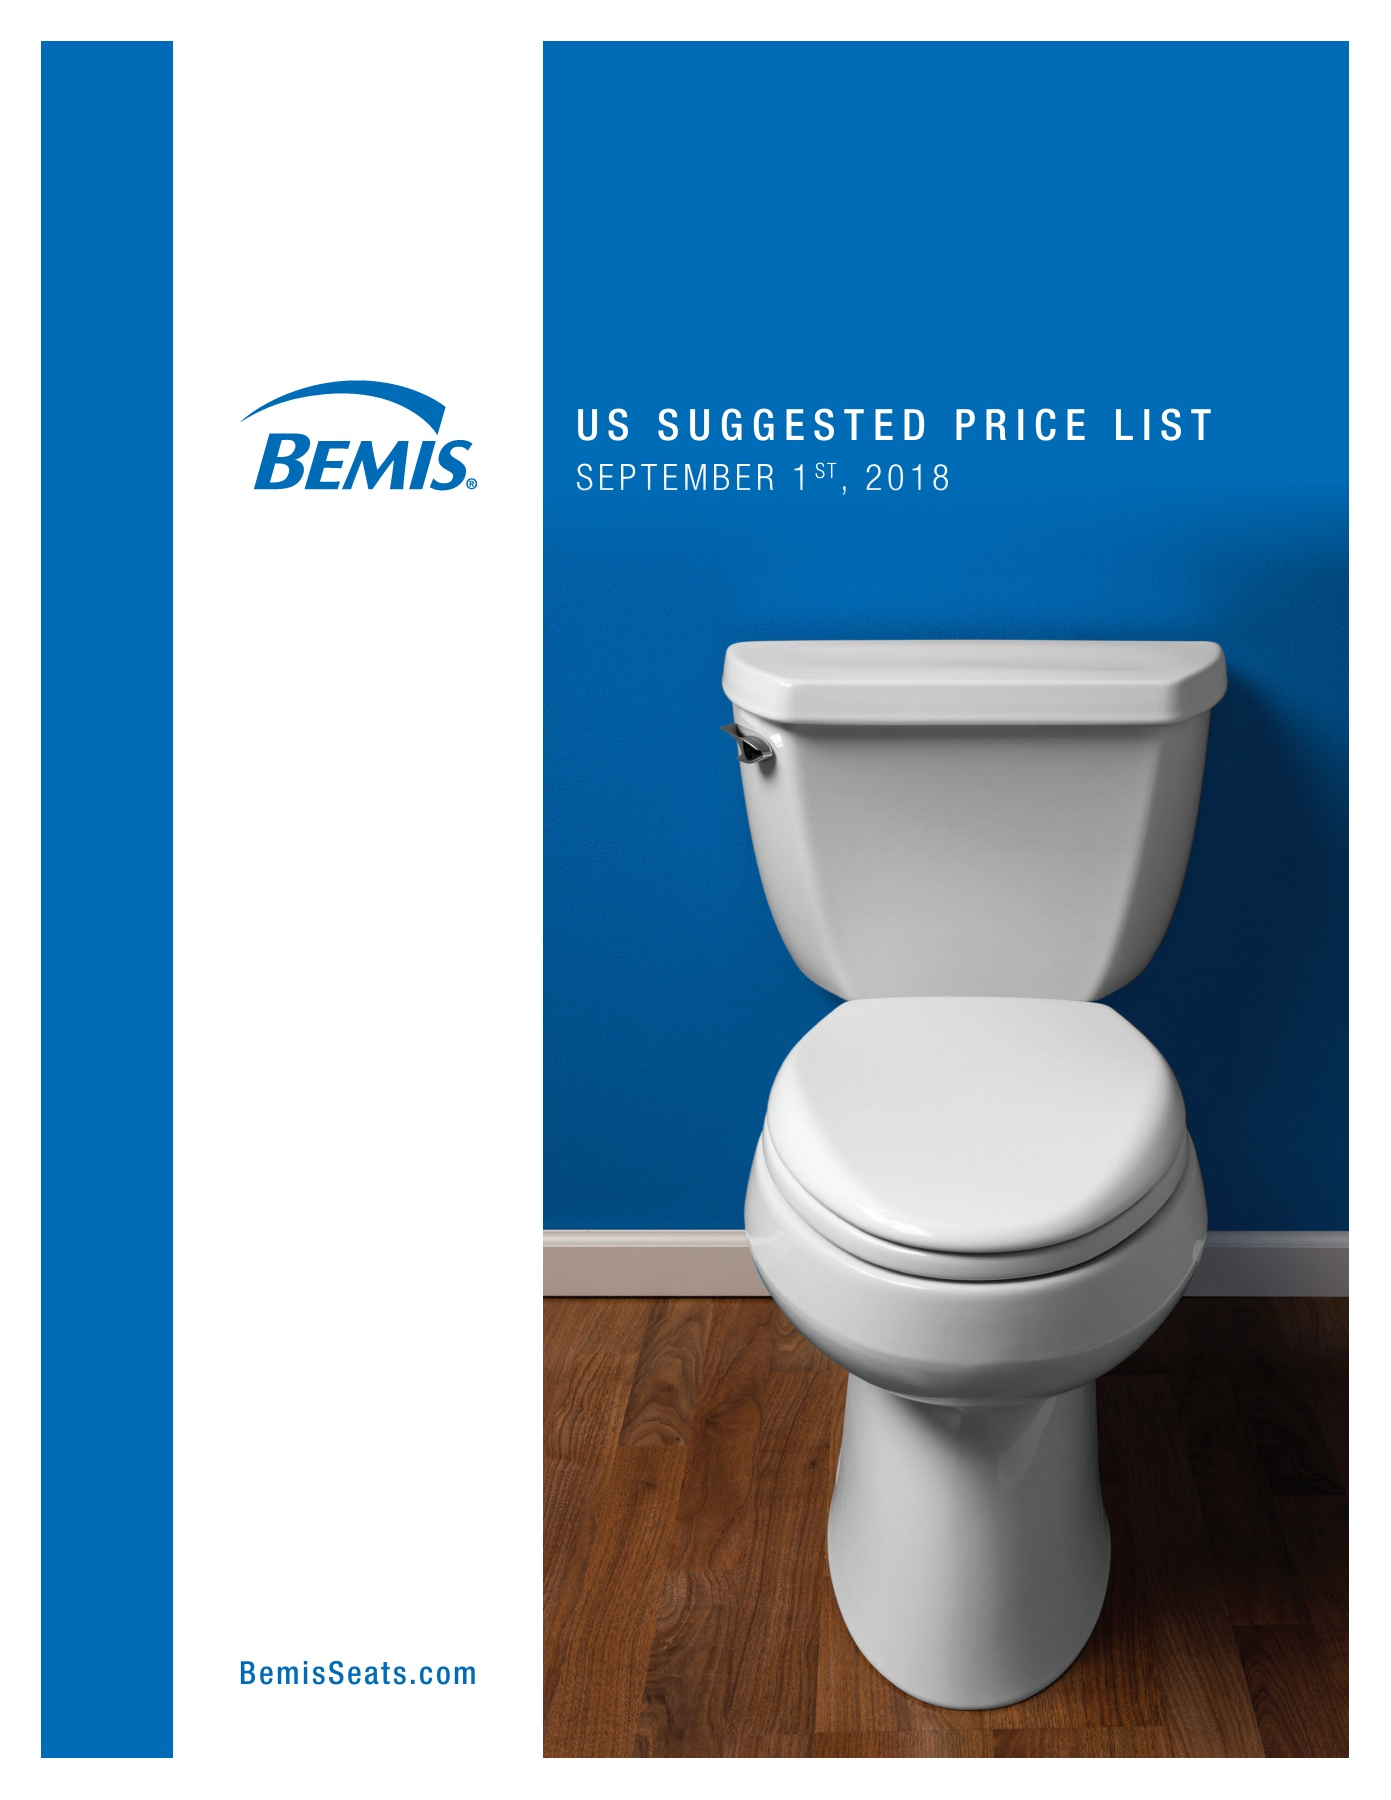 Pleasant 0B7014021 Bemis Price List Usa Pages 1 16 Text Version Pdpeps Interior Chair Design Pdpepsorg